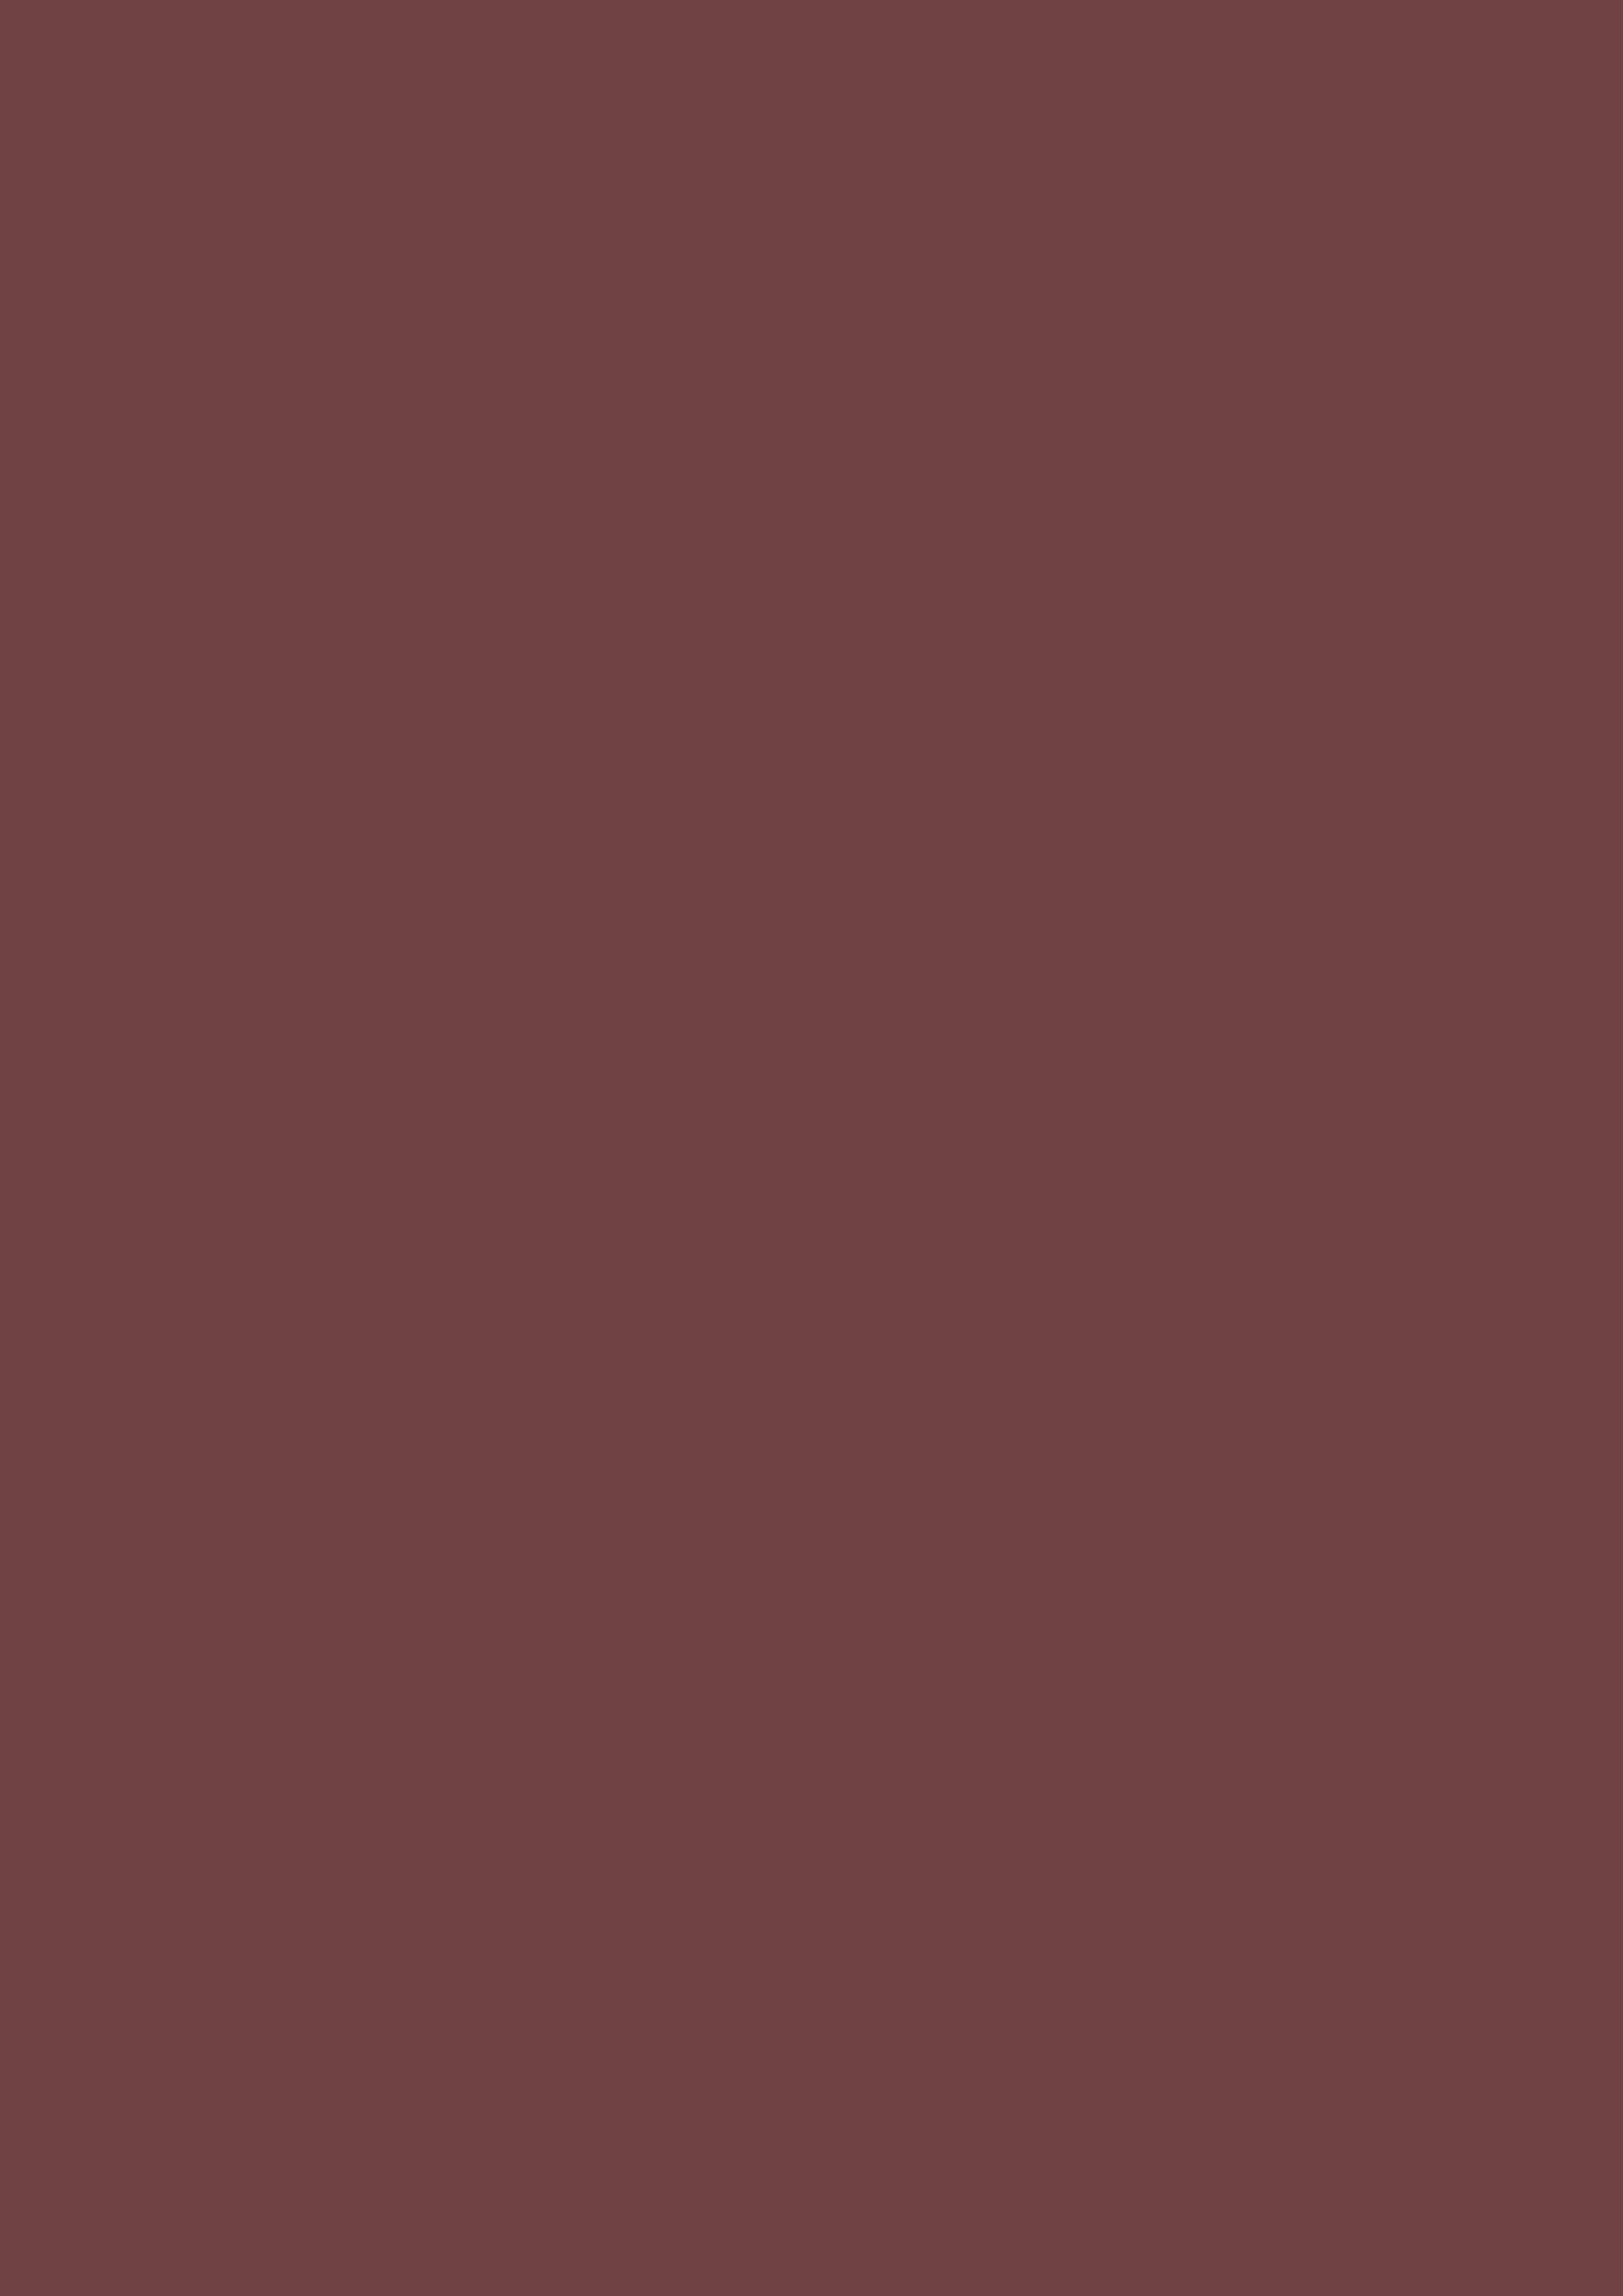 2480x3508 Deep Coffee Solid Color Background